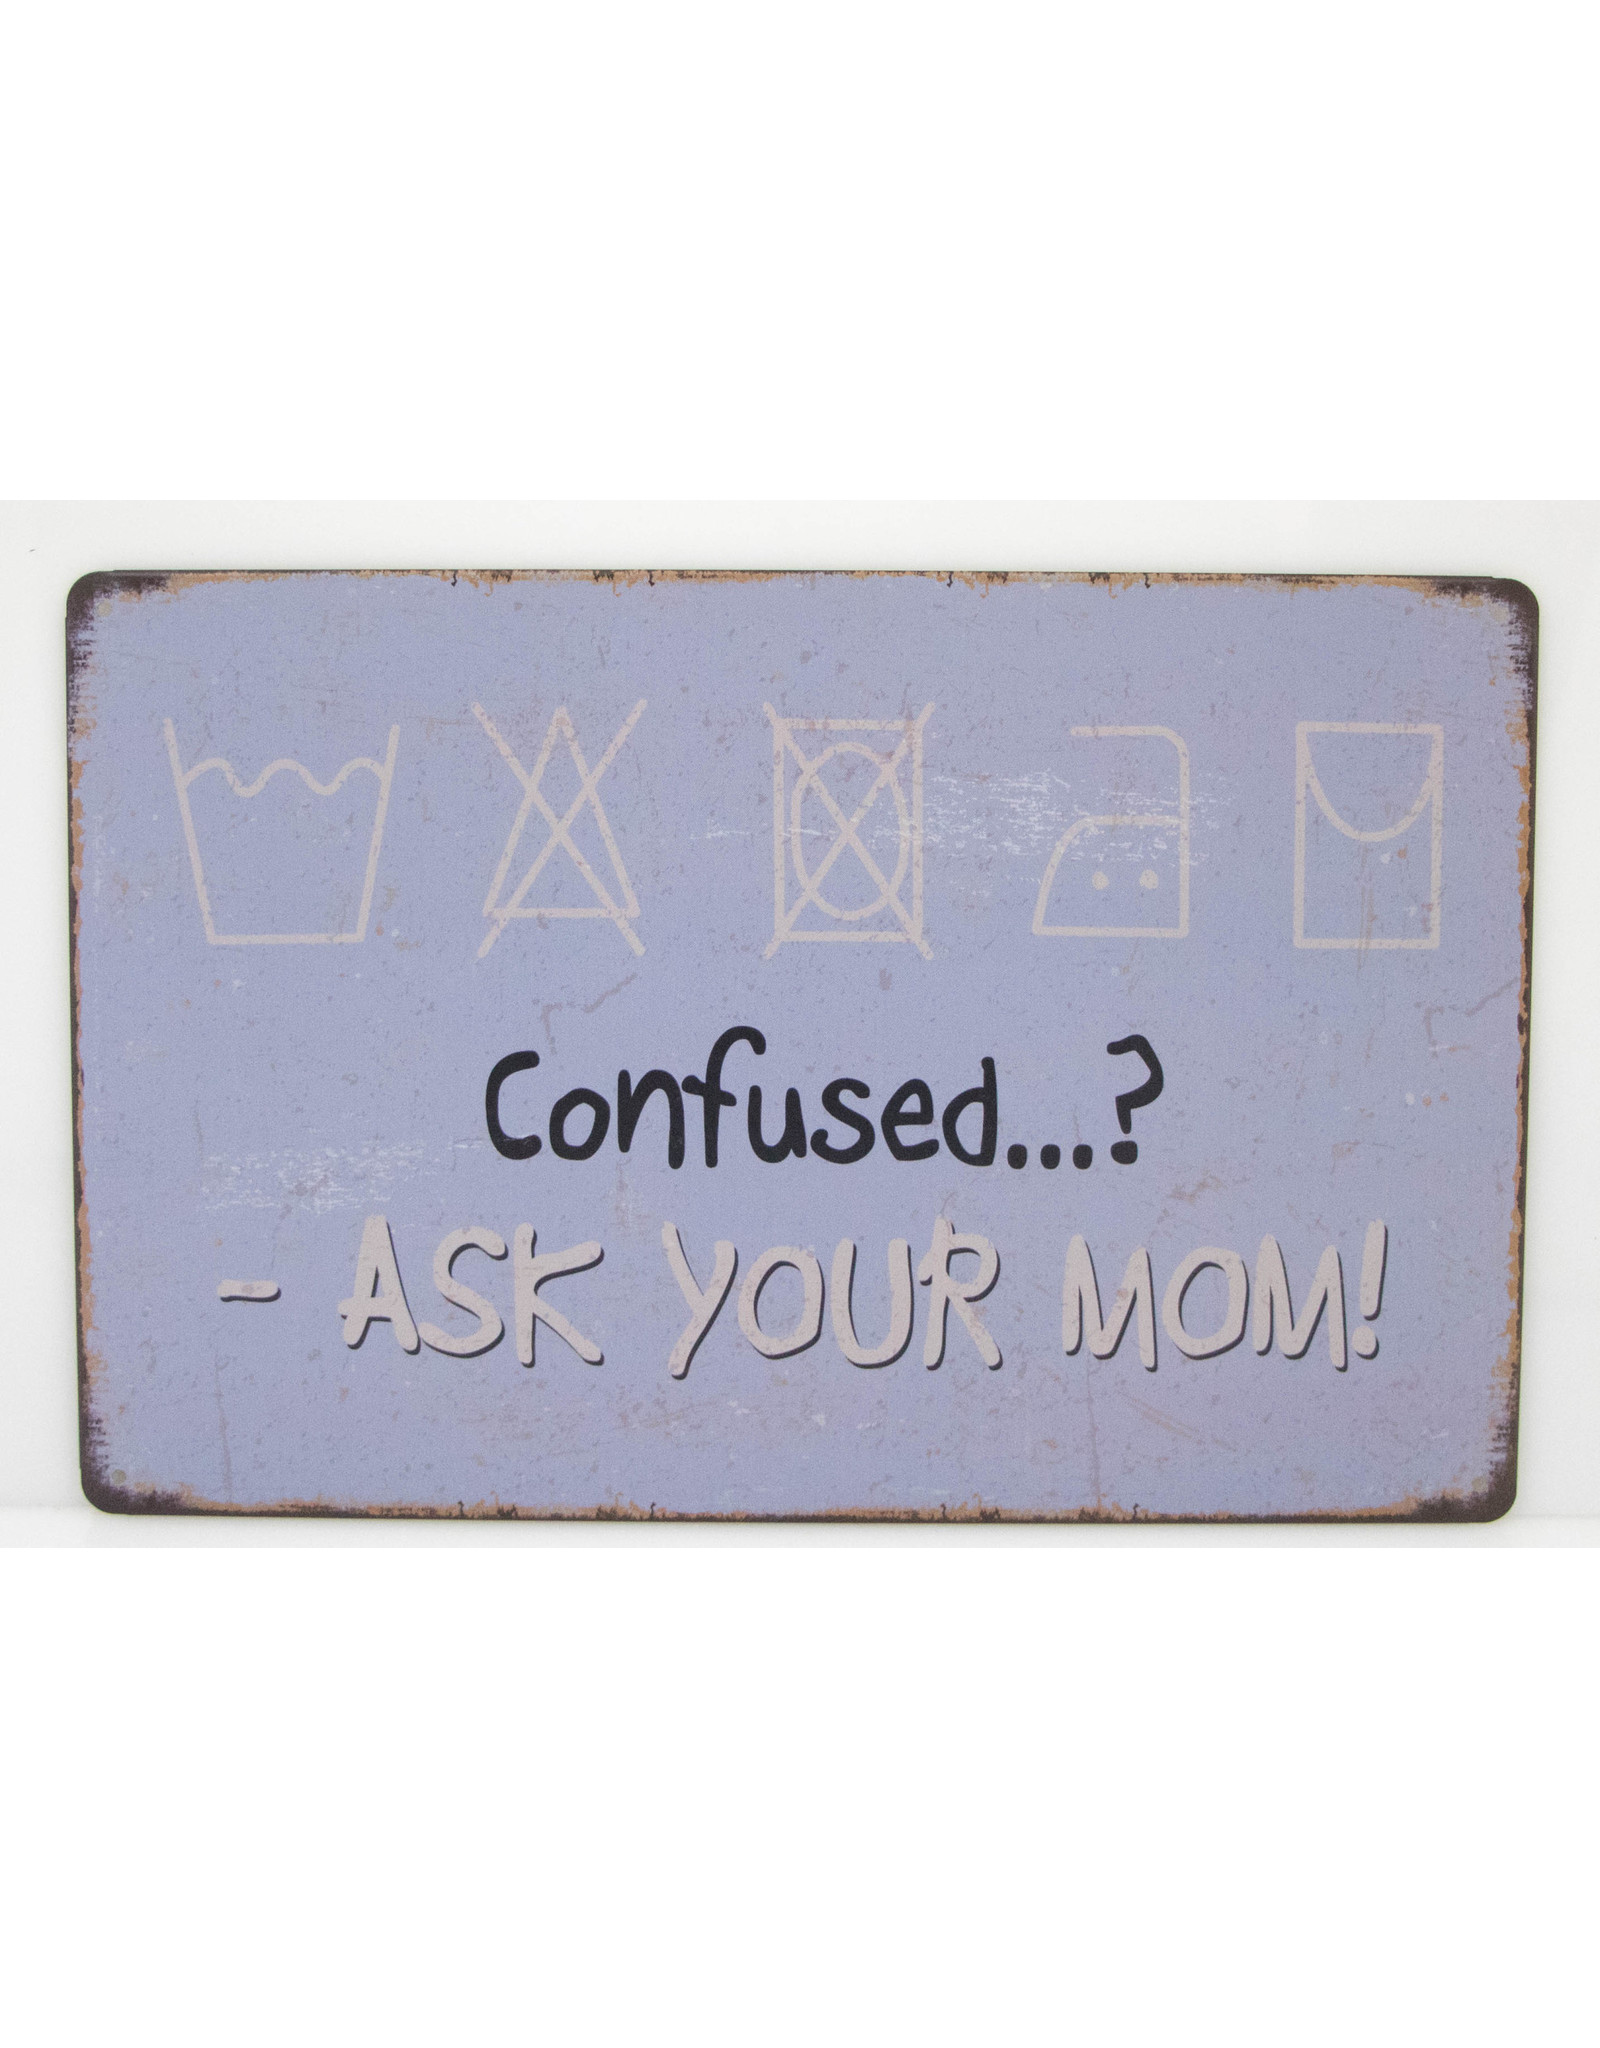 Confused... ask your mom